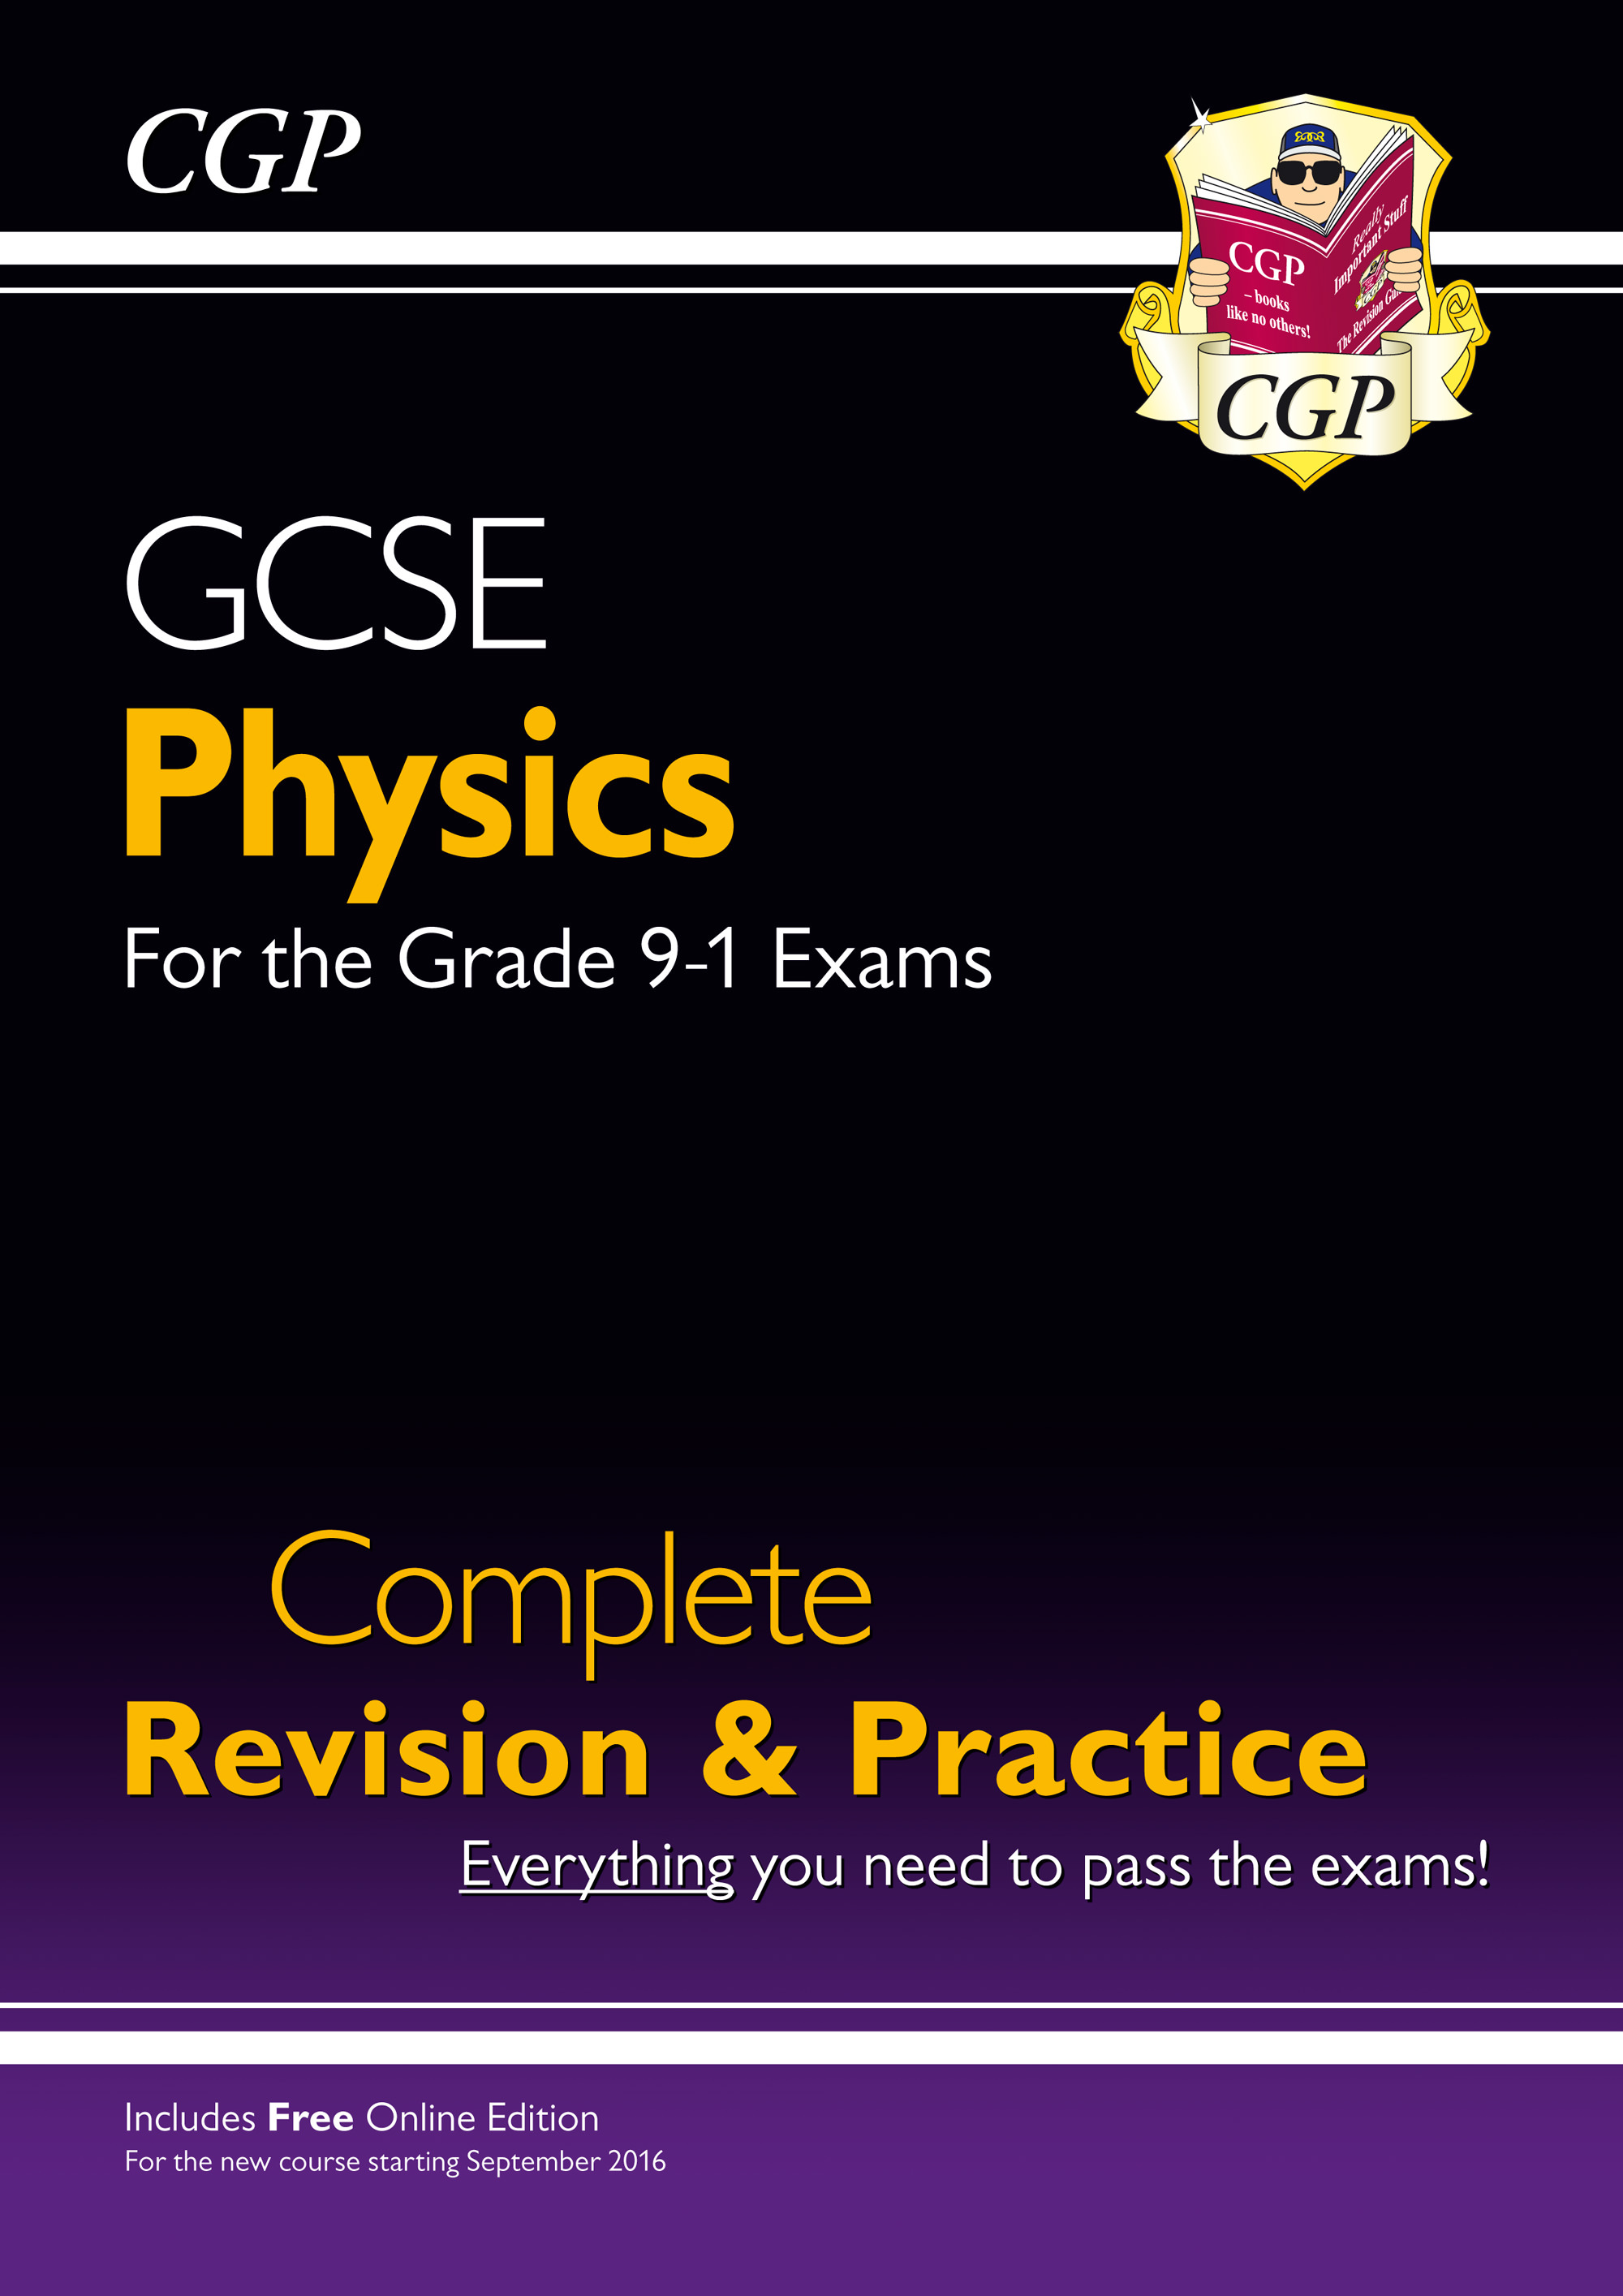 PHS45 - New Grade 9-1 GCSE Physics Complete Revision & Practice with Online Edition